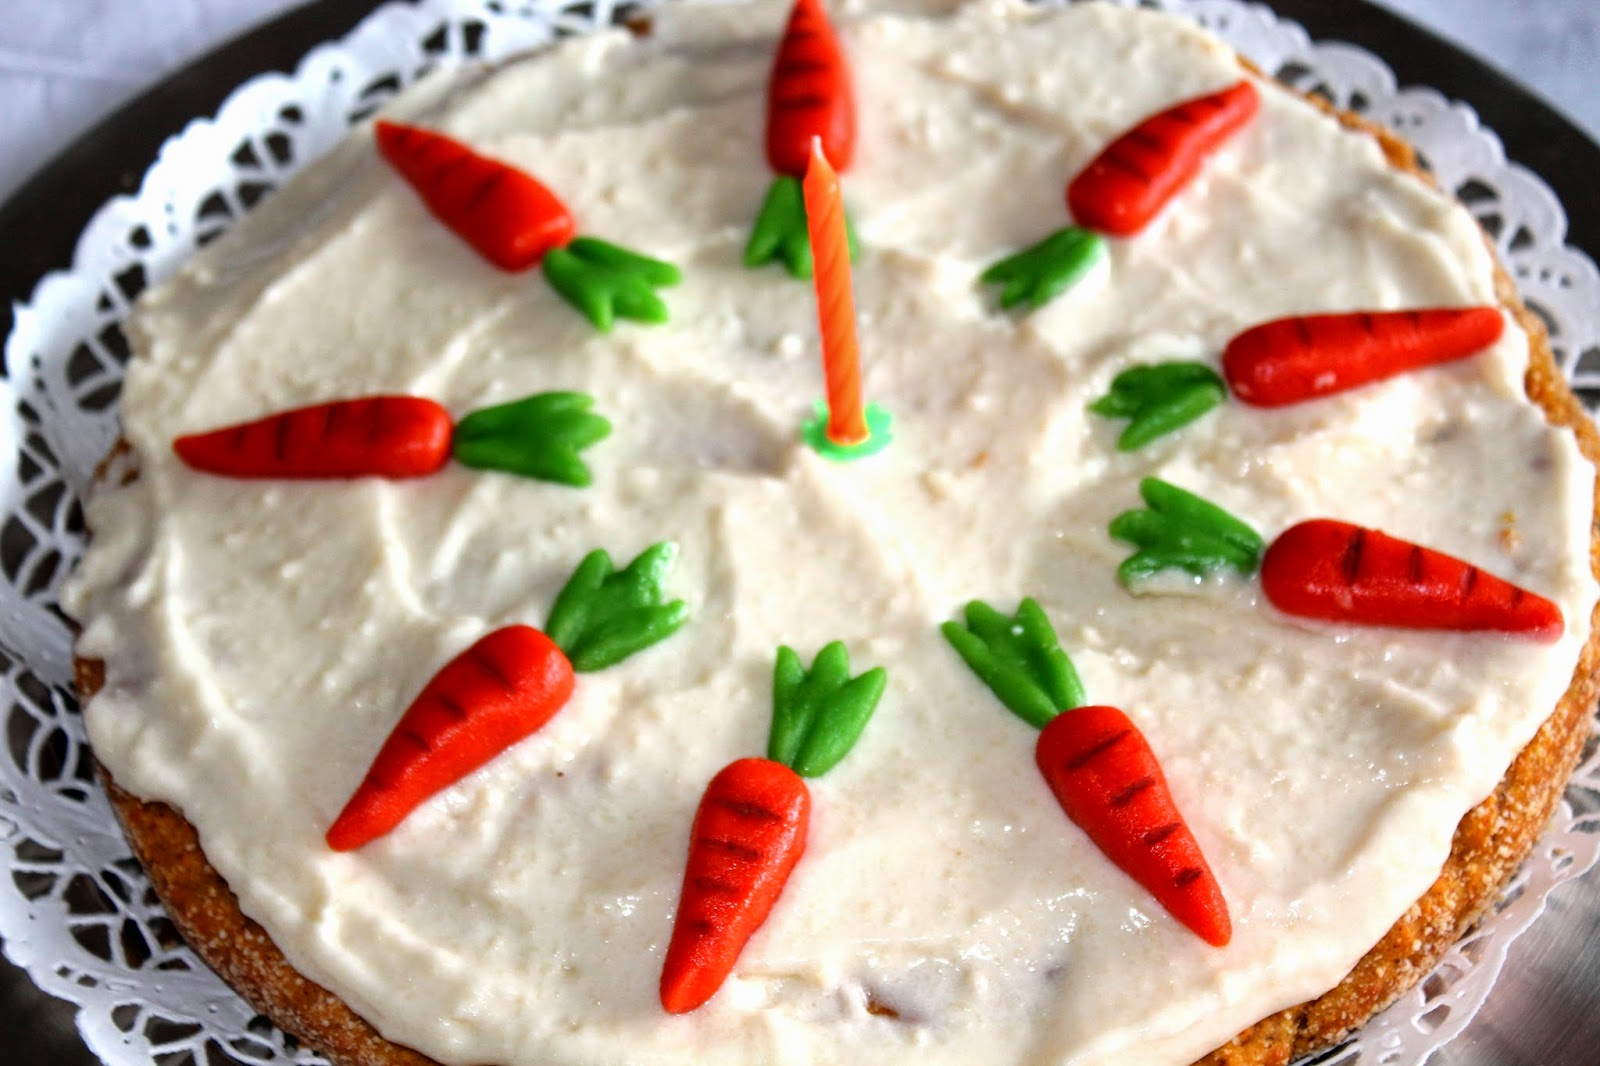 carrot cake with marzipan decorations